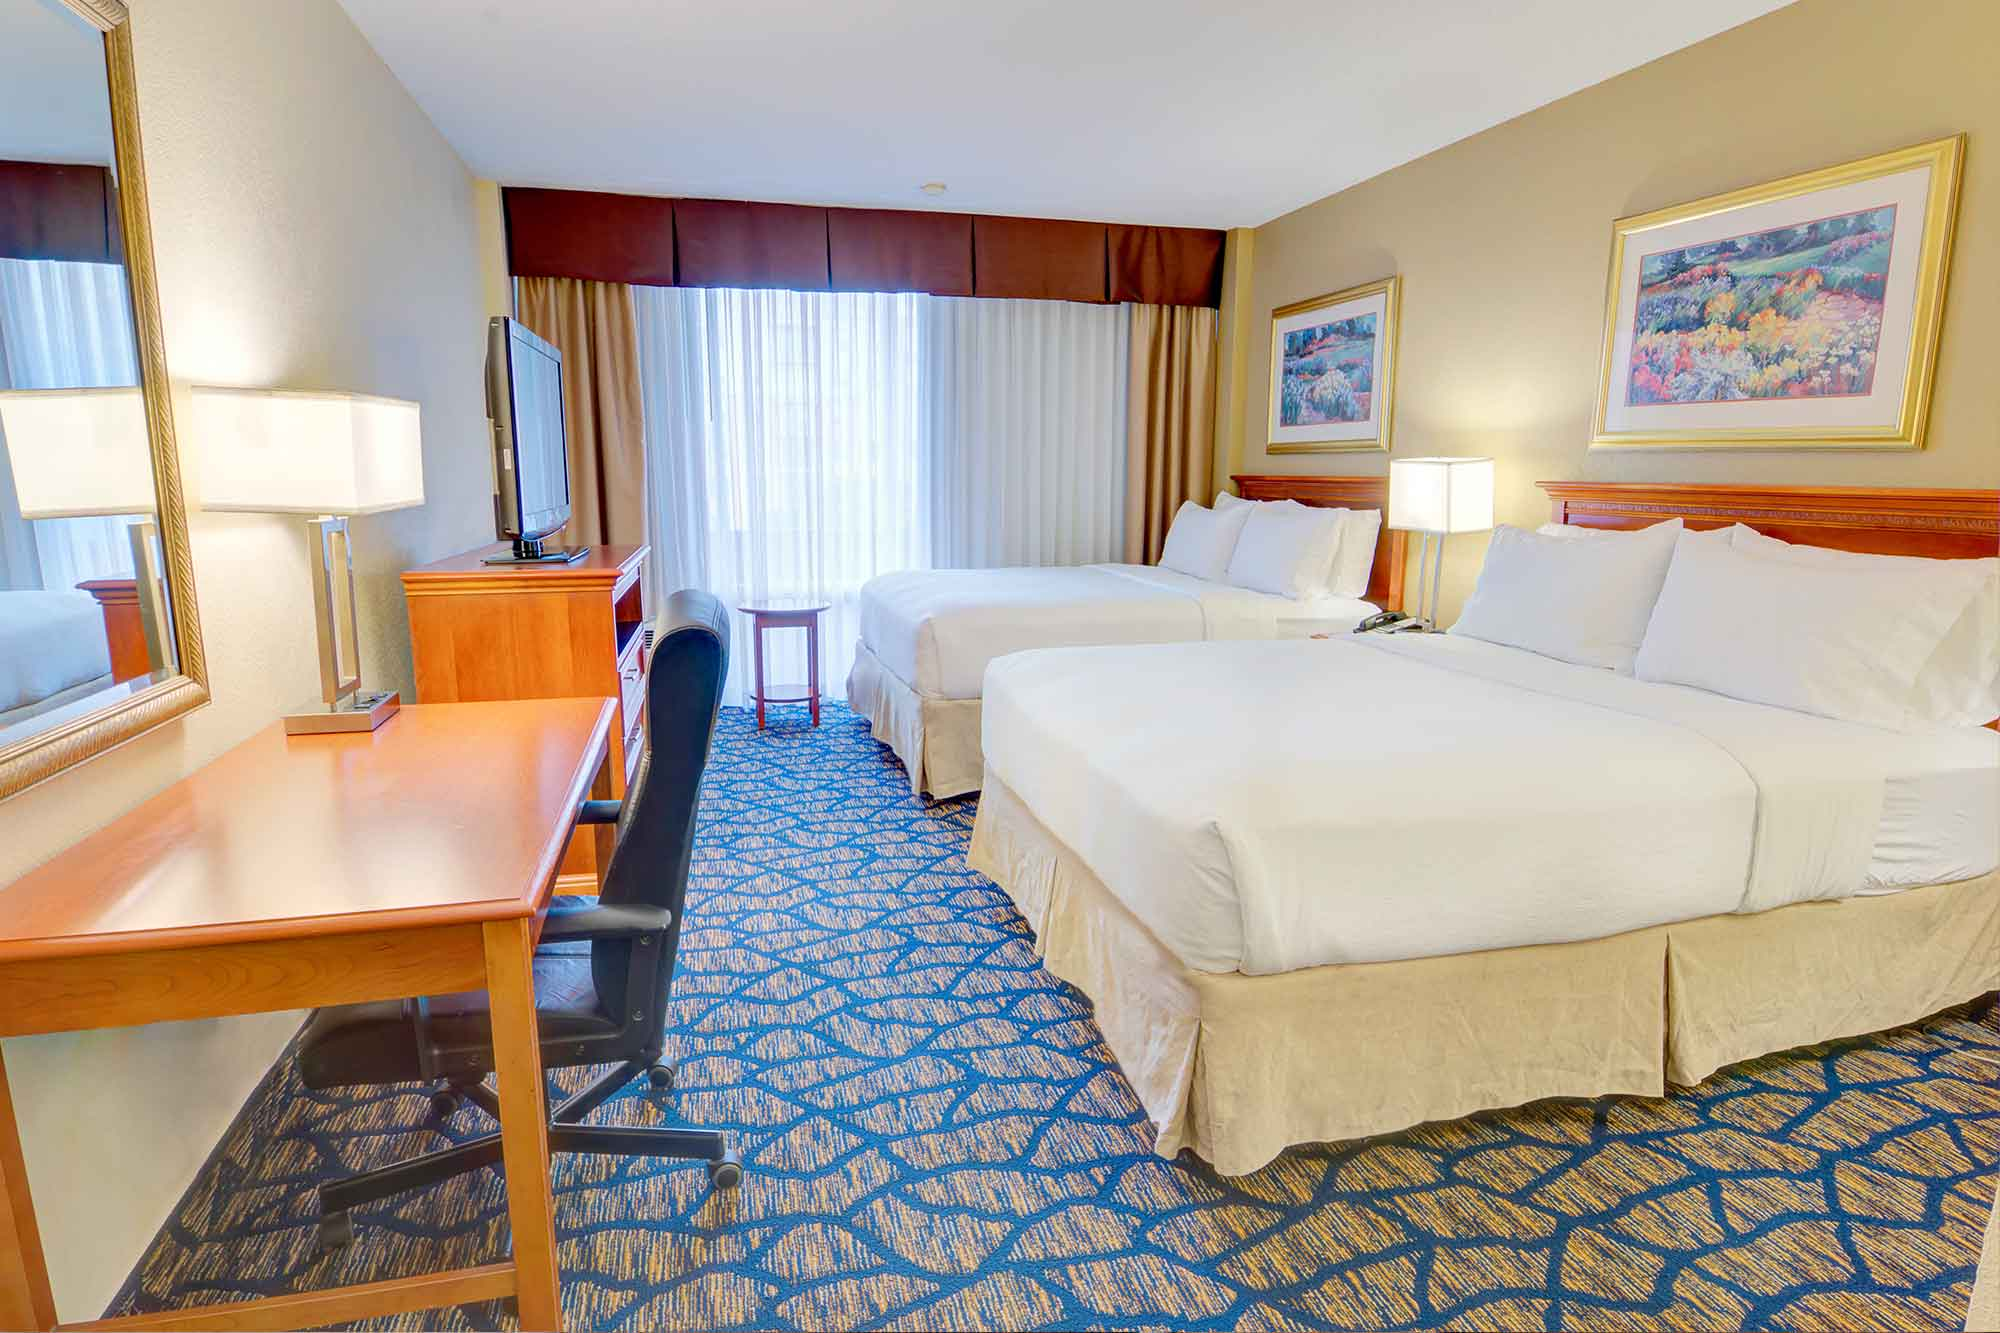 gainesville fl accommodations holiday inn gainesville fl located across from university of. Black Bedroom Furniture Sets. Home Design Ideas